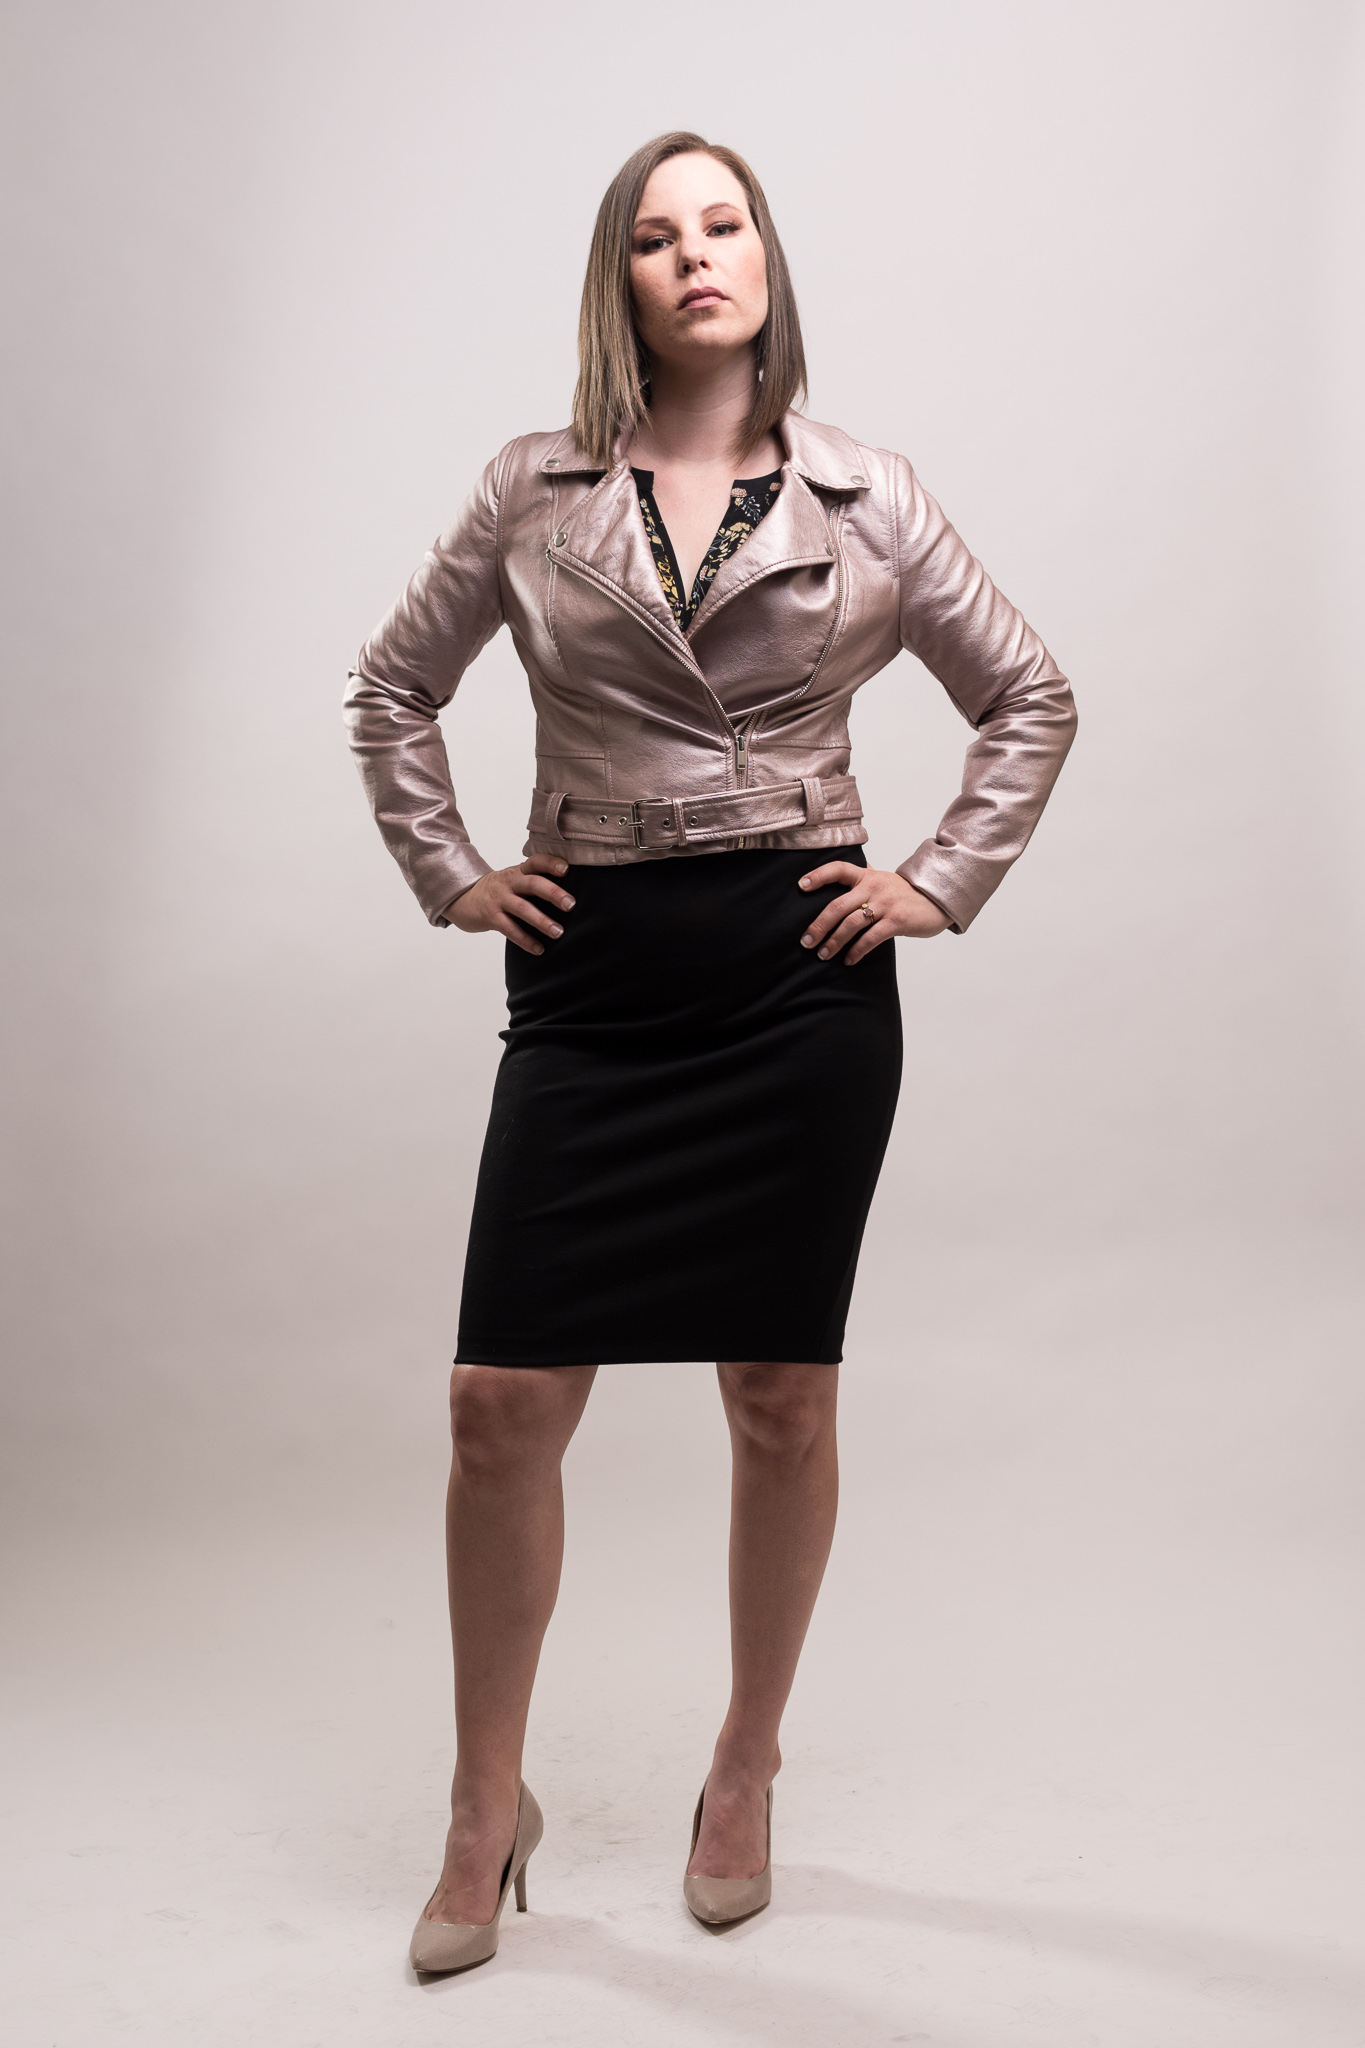 Raquel Greer Gordian styles Jessica for business casual occasions in the fall.